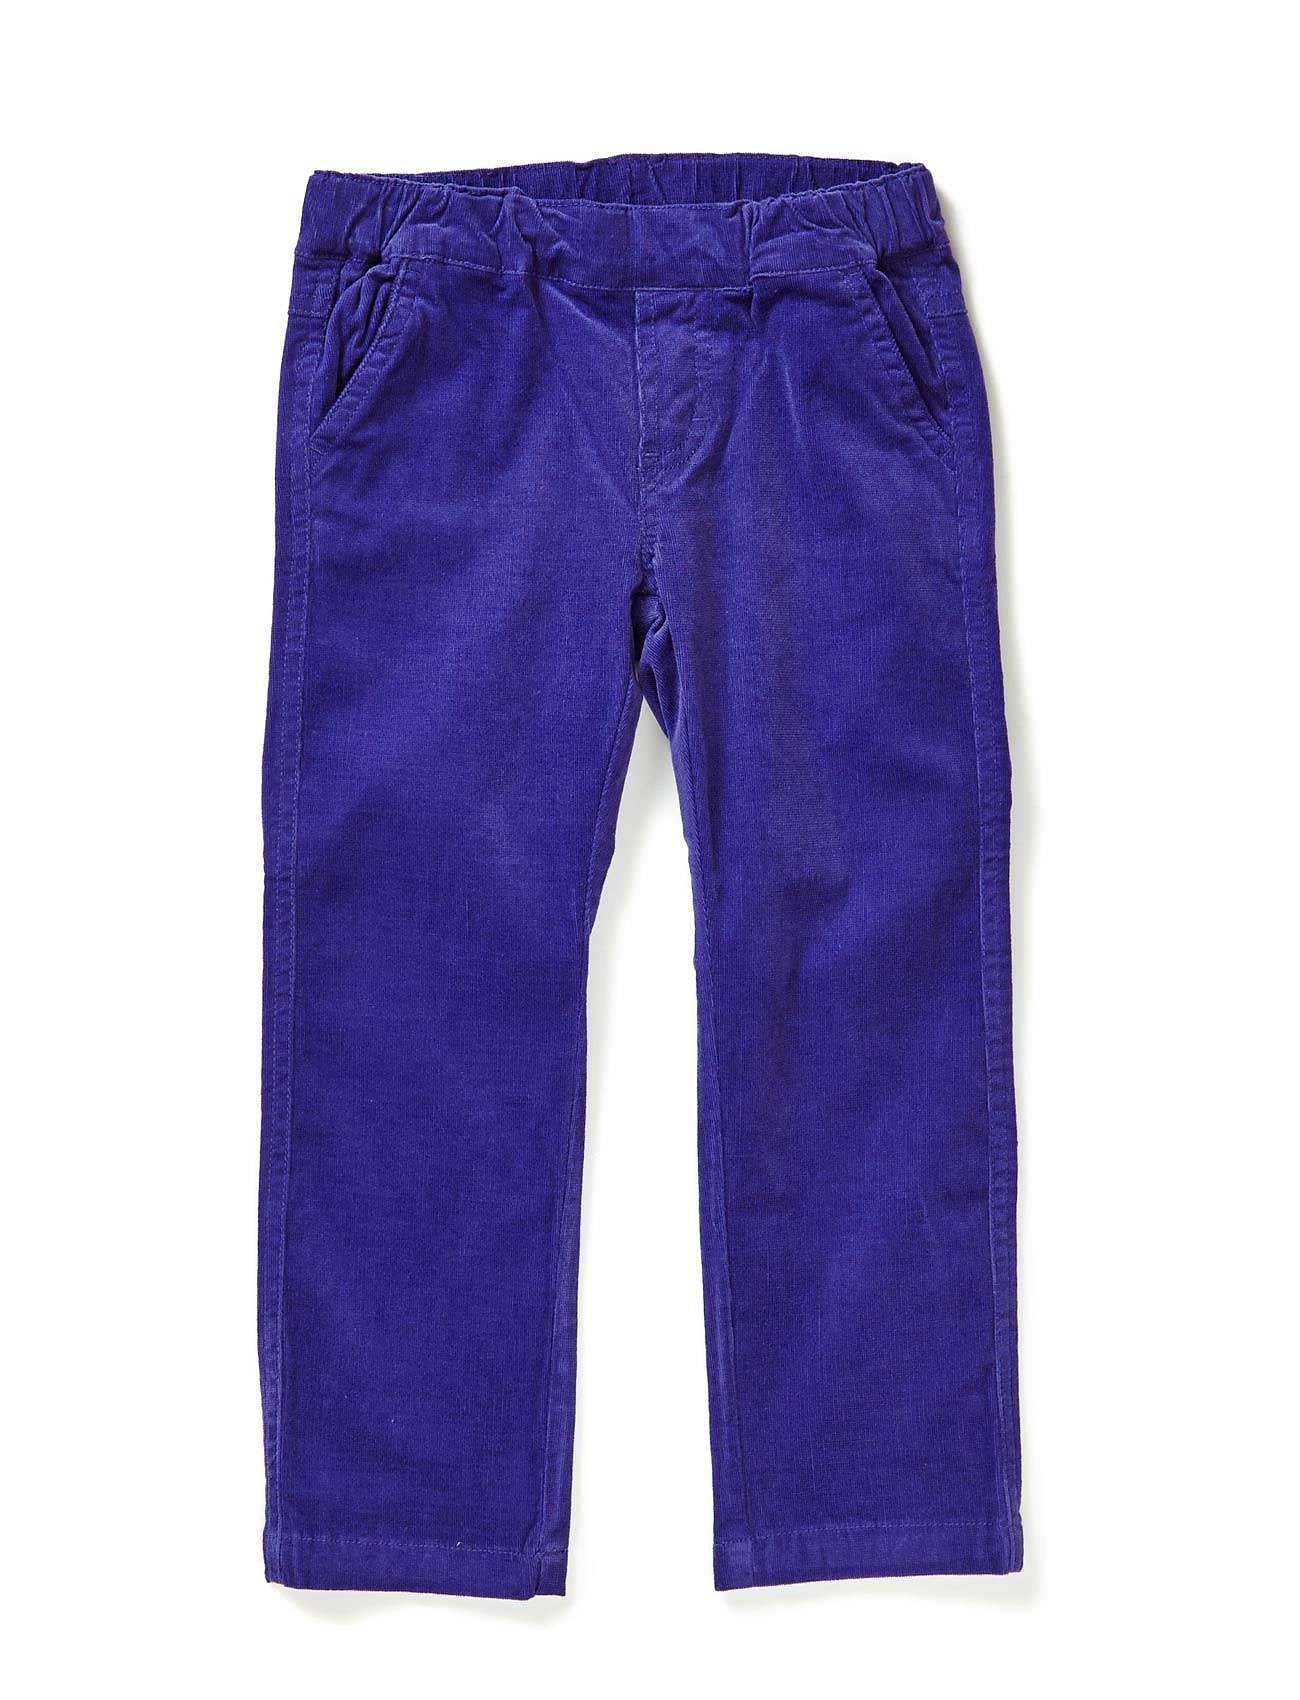 Lego wear PEJA 702 - PANTS - PURPLE